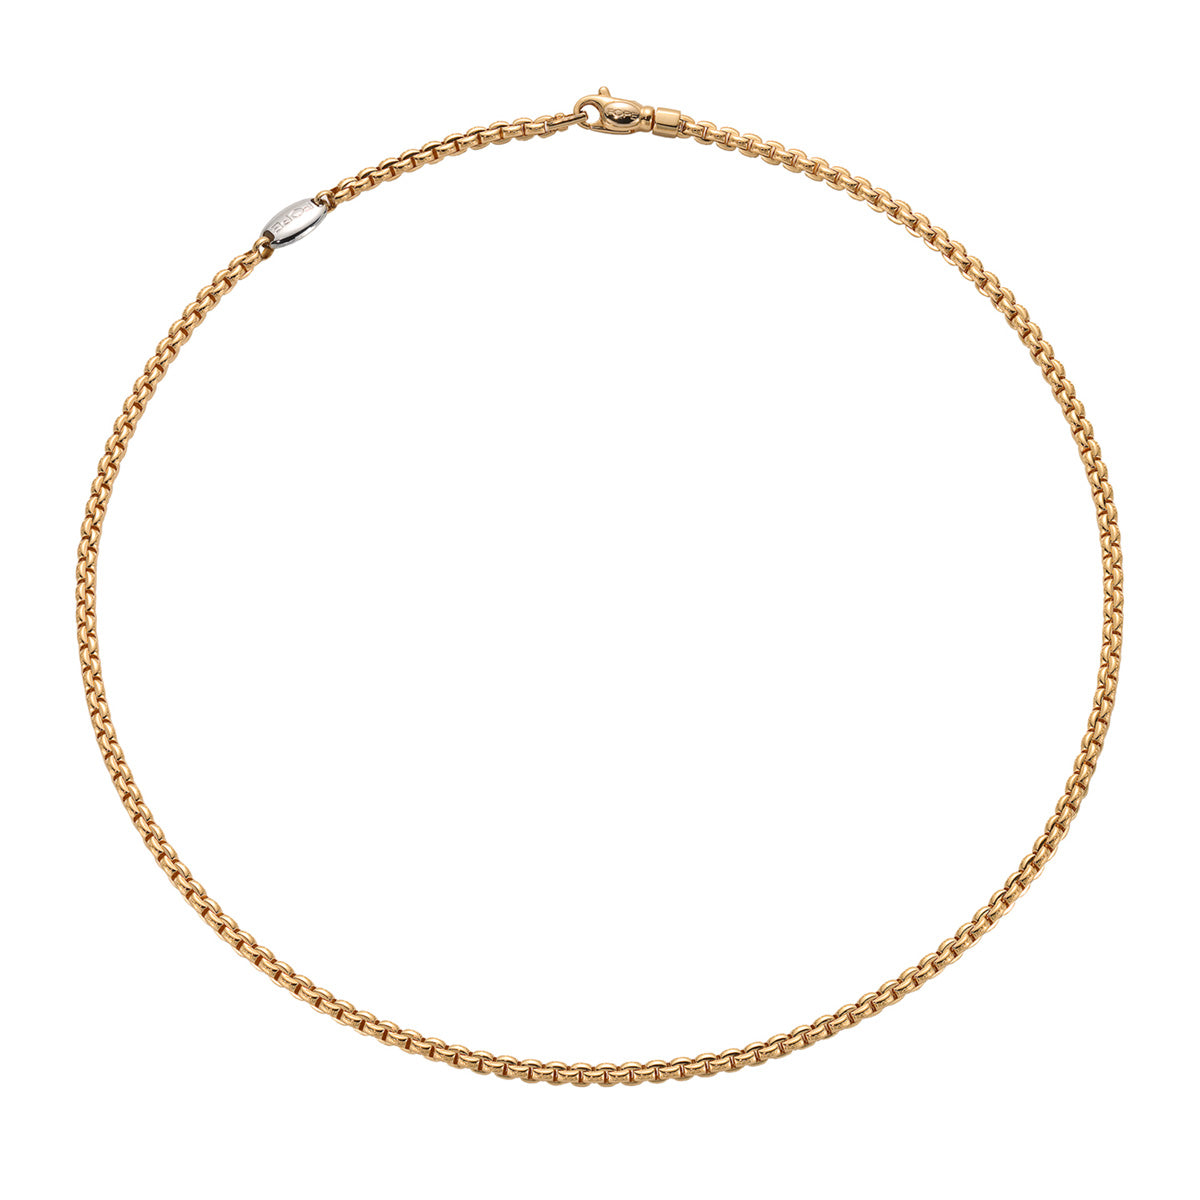 Fope Eka Tiny Necklace in 18ct Yellow Gold - Hamilton & Inches